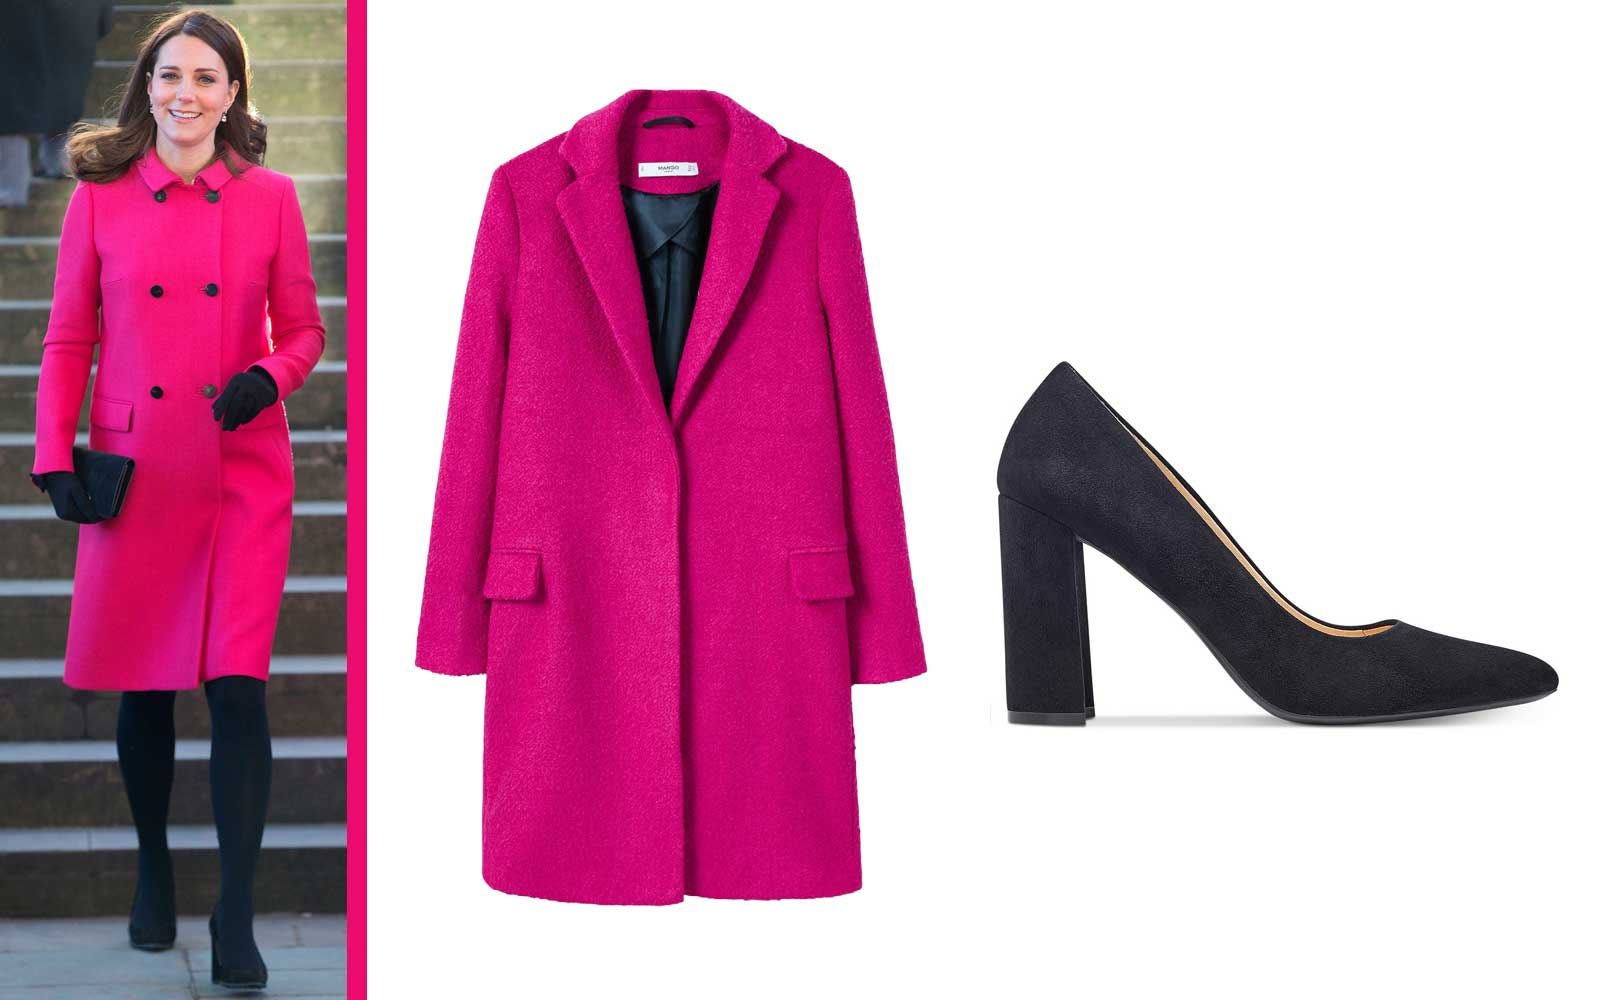 Kate Middleton Hot Pink Coat and Black Heels